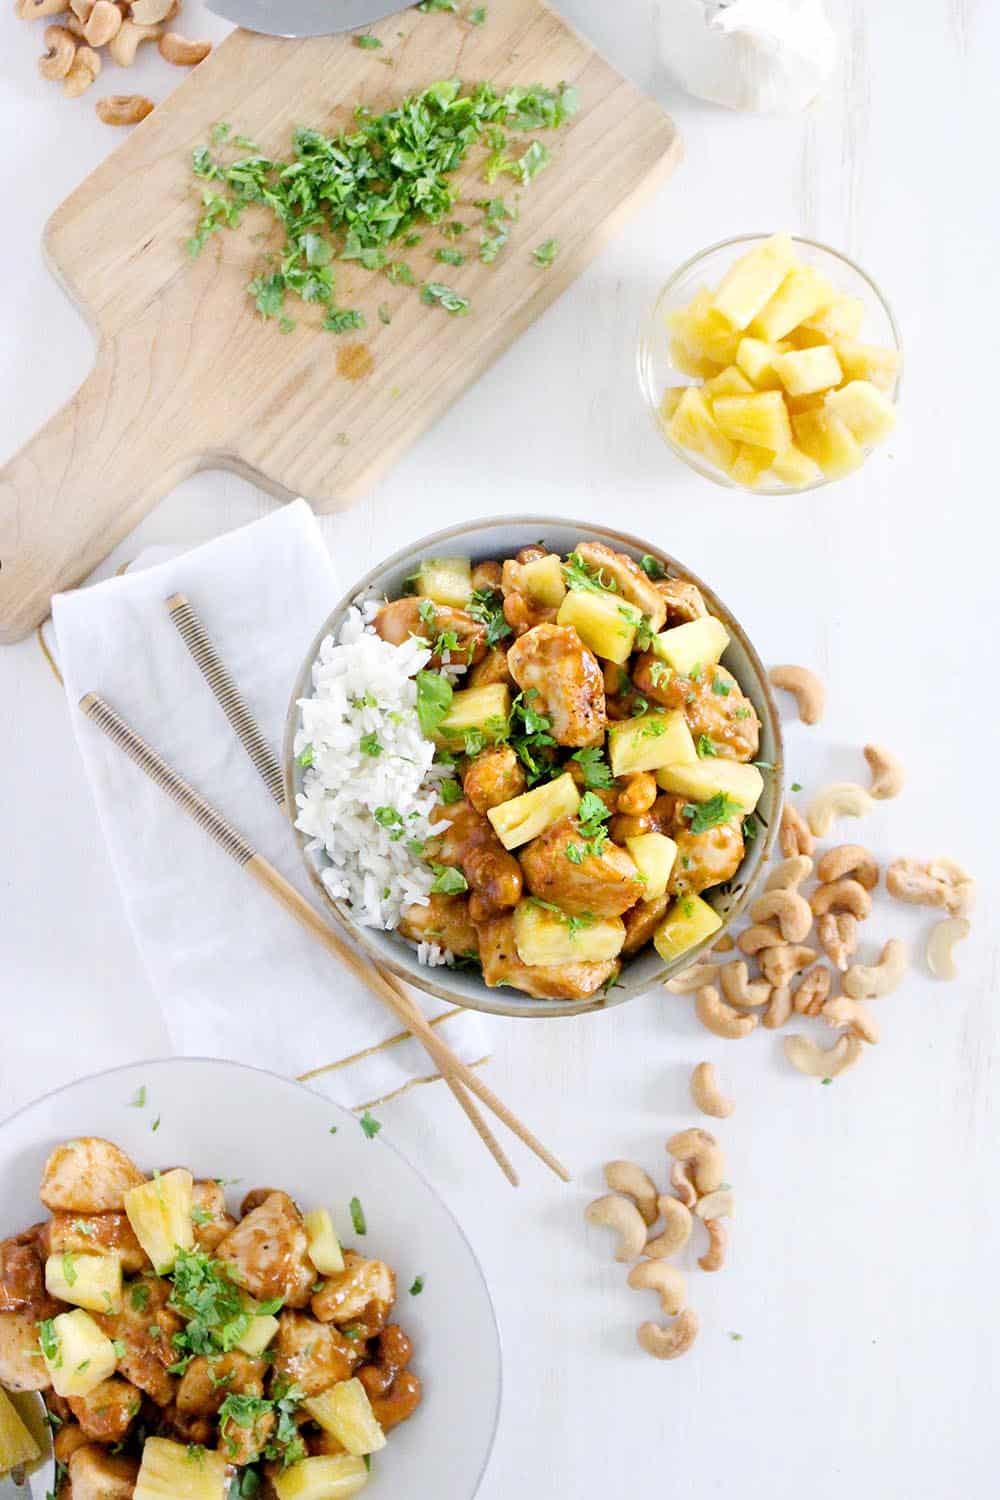 This skinny pineapple chicken with cashews is a healthy, low-fat stir fry you can make in 20 minutes! Naturally sweetened from fresh pineapple in a thick and delicious sauce brown sauce.